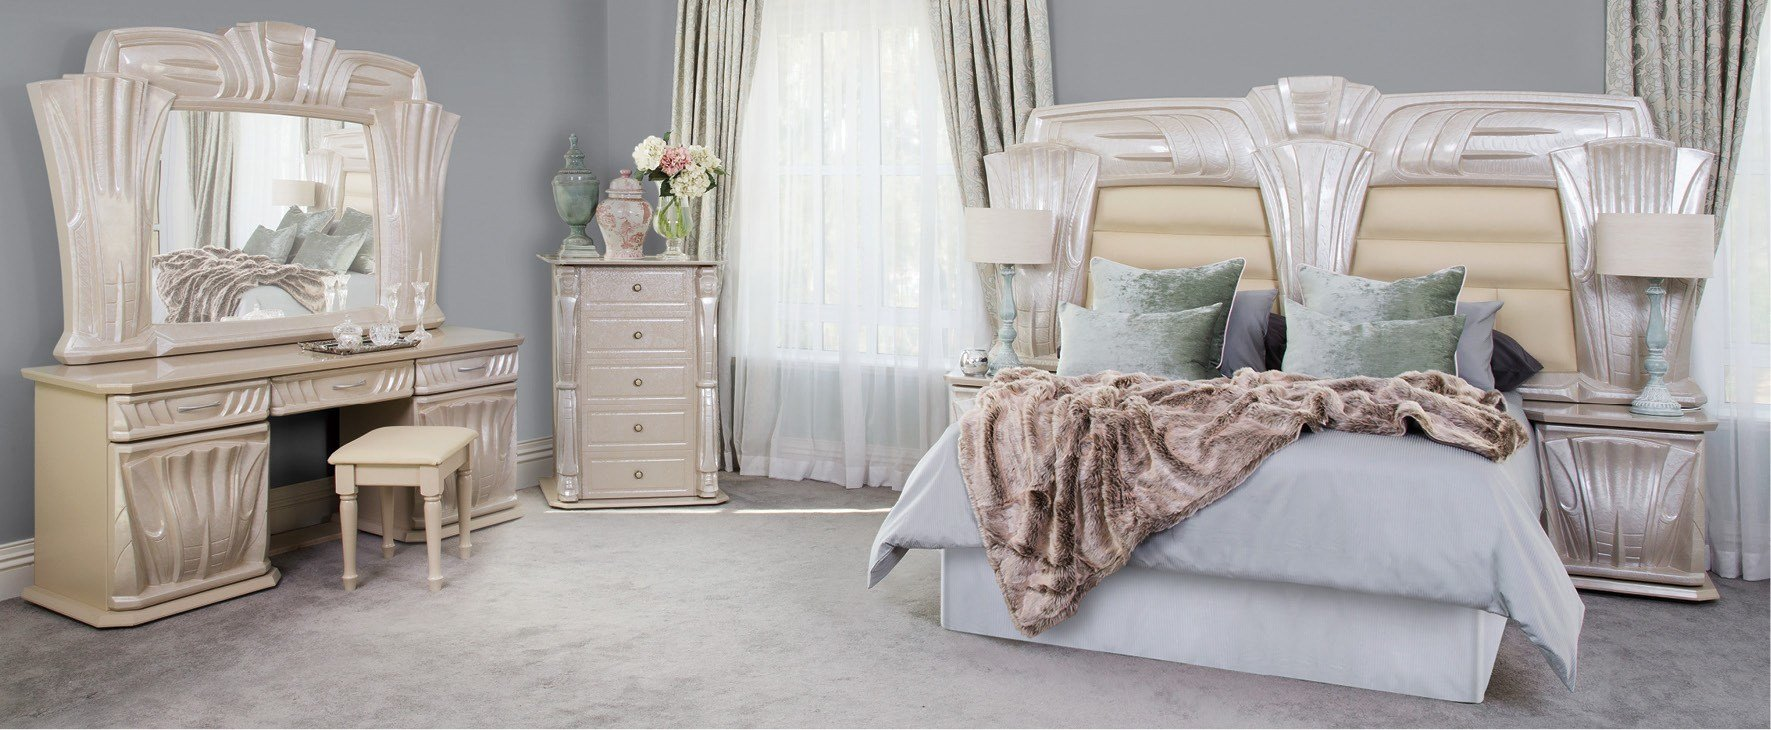 Best Affordable Bedroom Suites In Gauteng Bakos Brothers South With Pictures